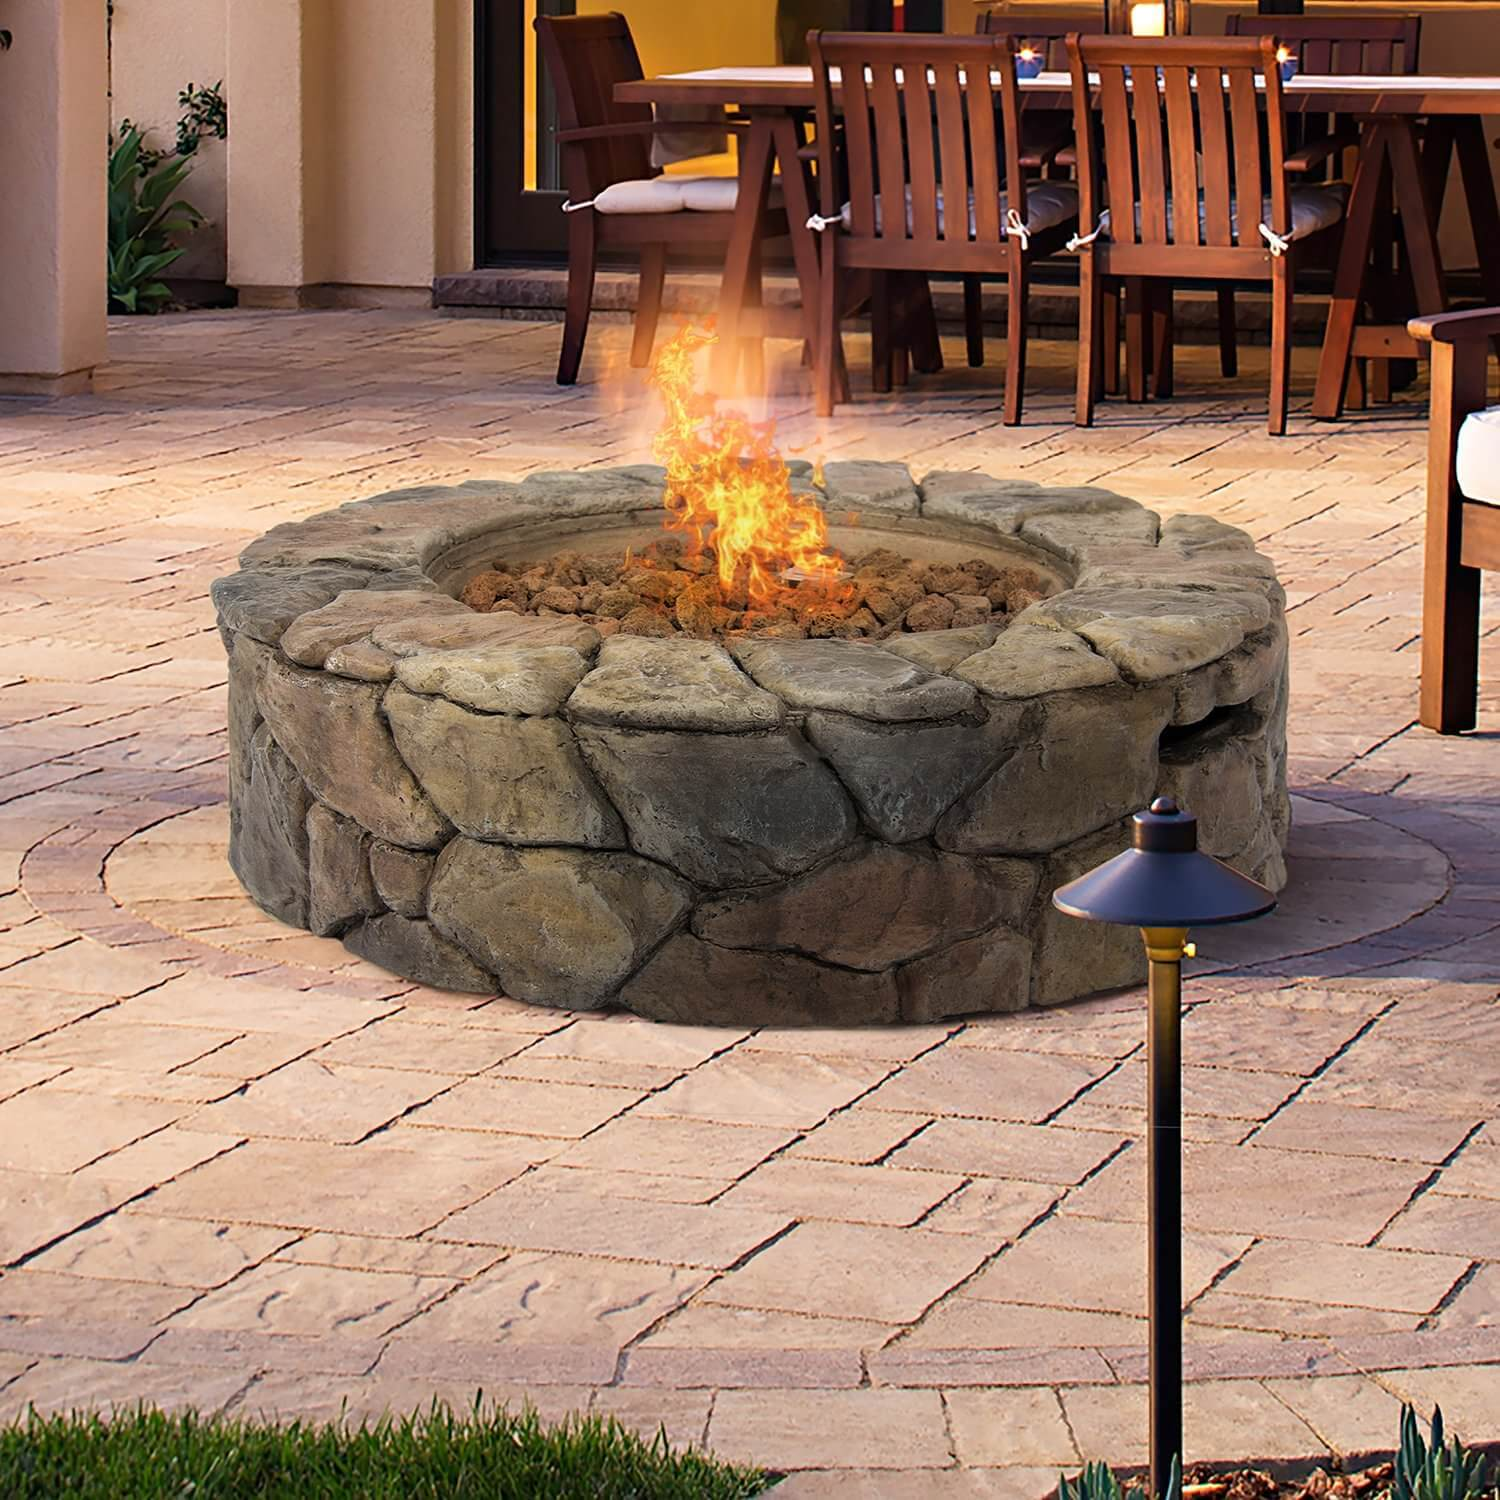 Let your visitors be transported into a campsite with this natural rock façade gas patio fire pit. This fire pit is good for any traditional-styled home and it is constructed from natural stone for extra sturdiness. It is also very easy to open thanks to its spark-ignition button and there is a gas-flow knob that helps you control the heat and flame height. It is capable of a 30,000 BTUs heat output.